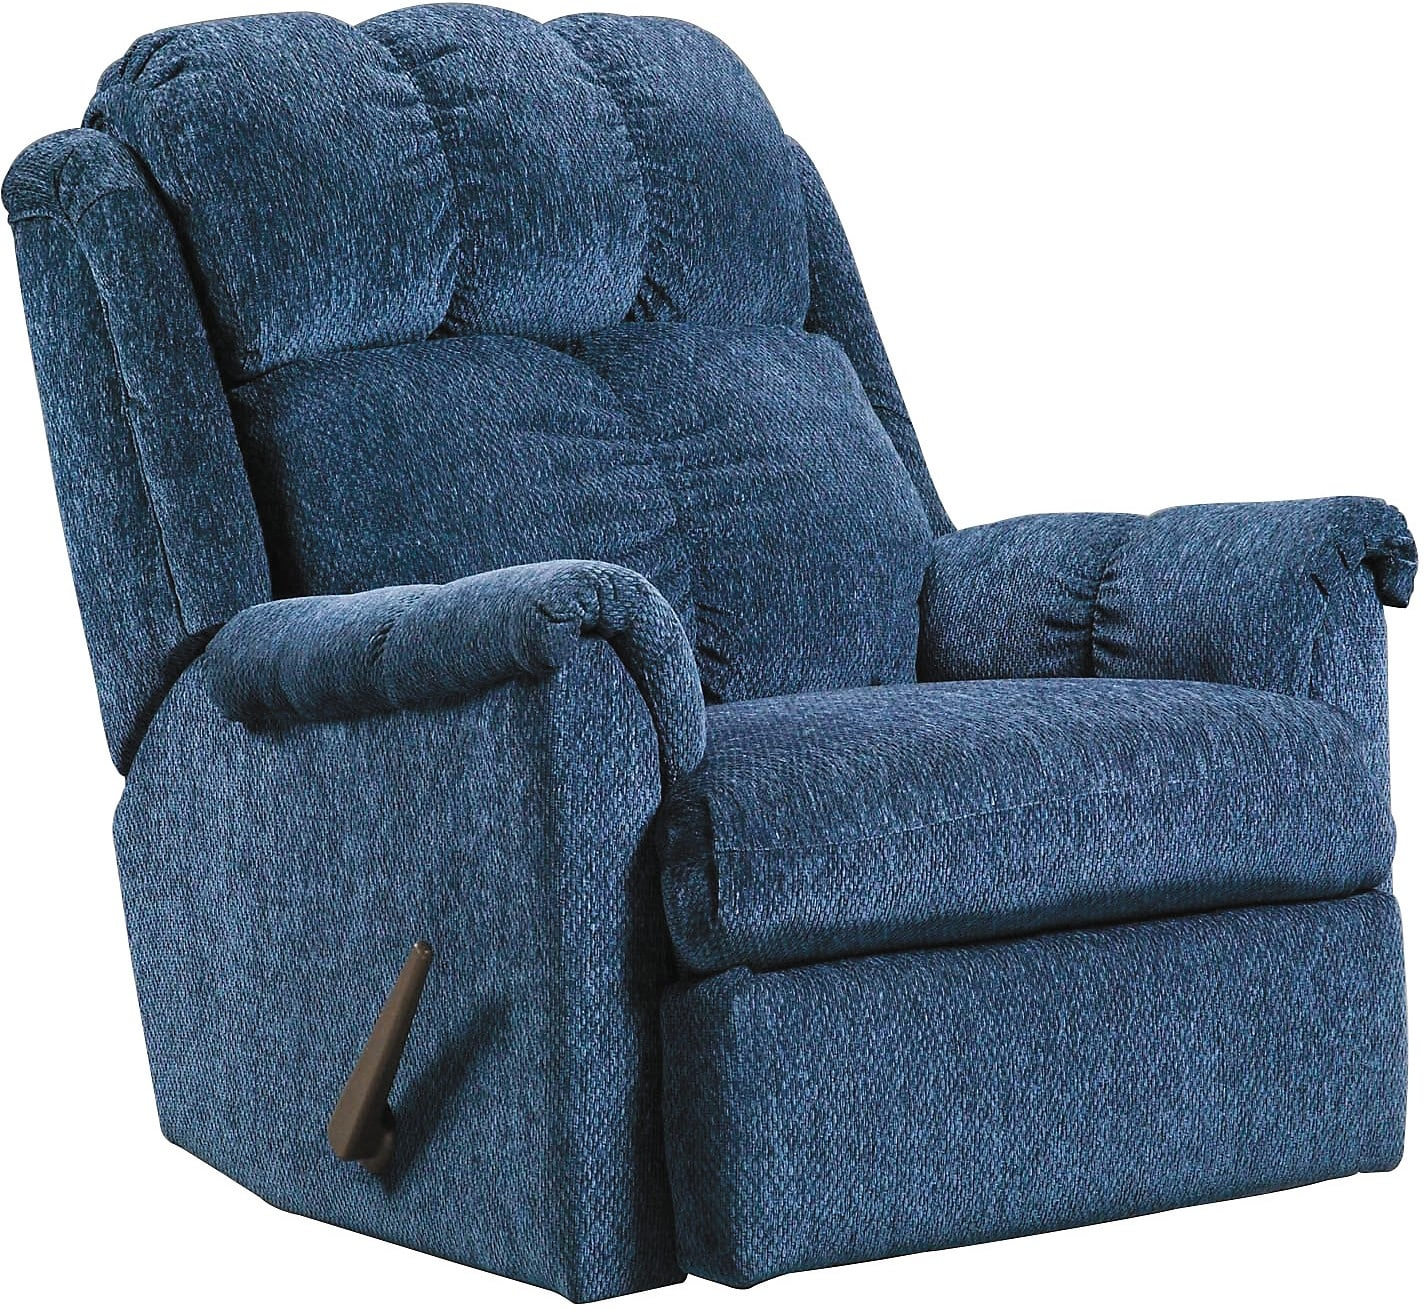 fauteuil ber ant inclinable en chenille bleu marine brick. Black Bedroom Furniture Sets. Home Design Ideas